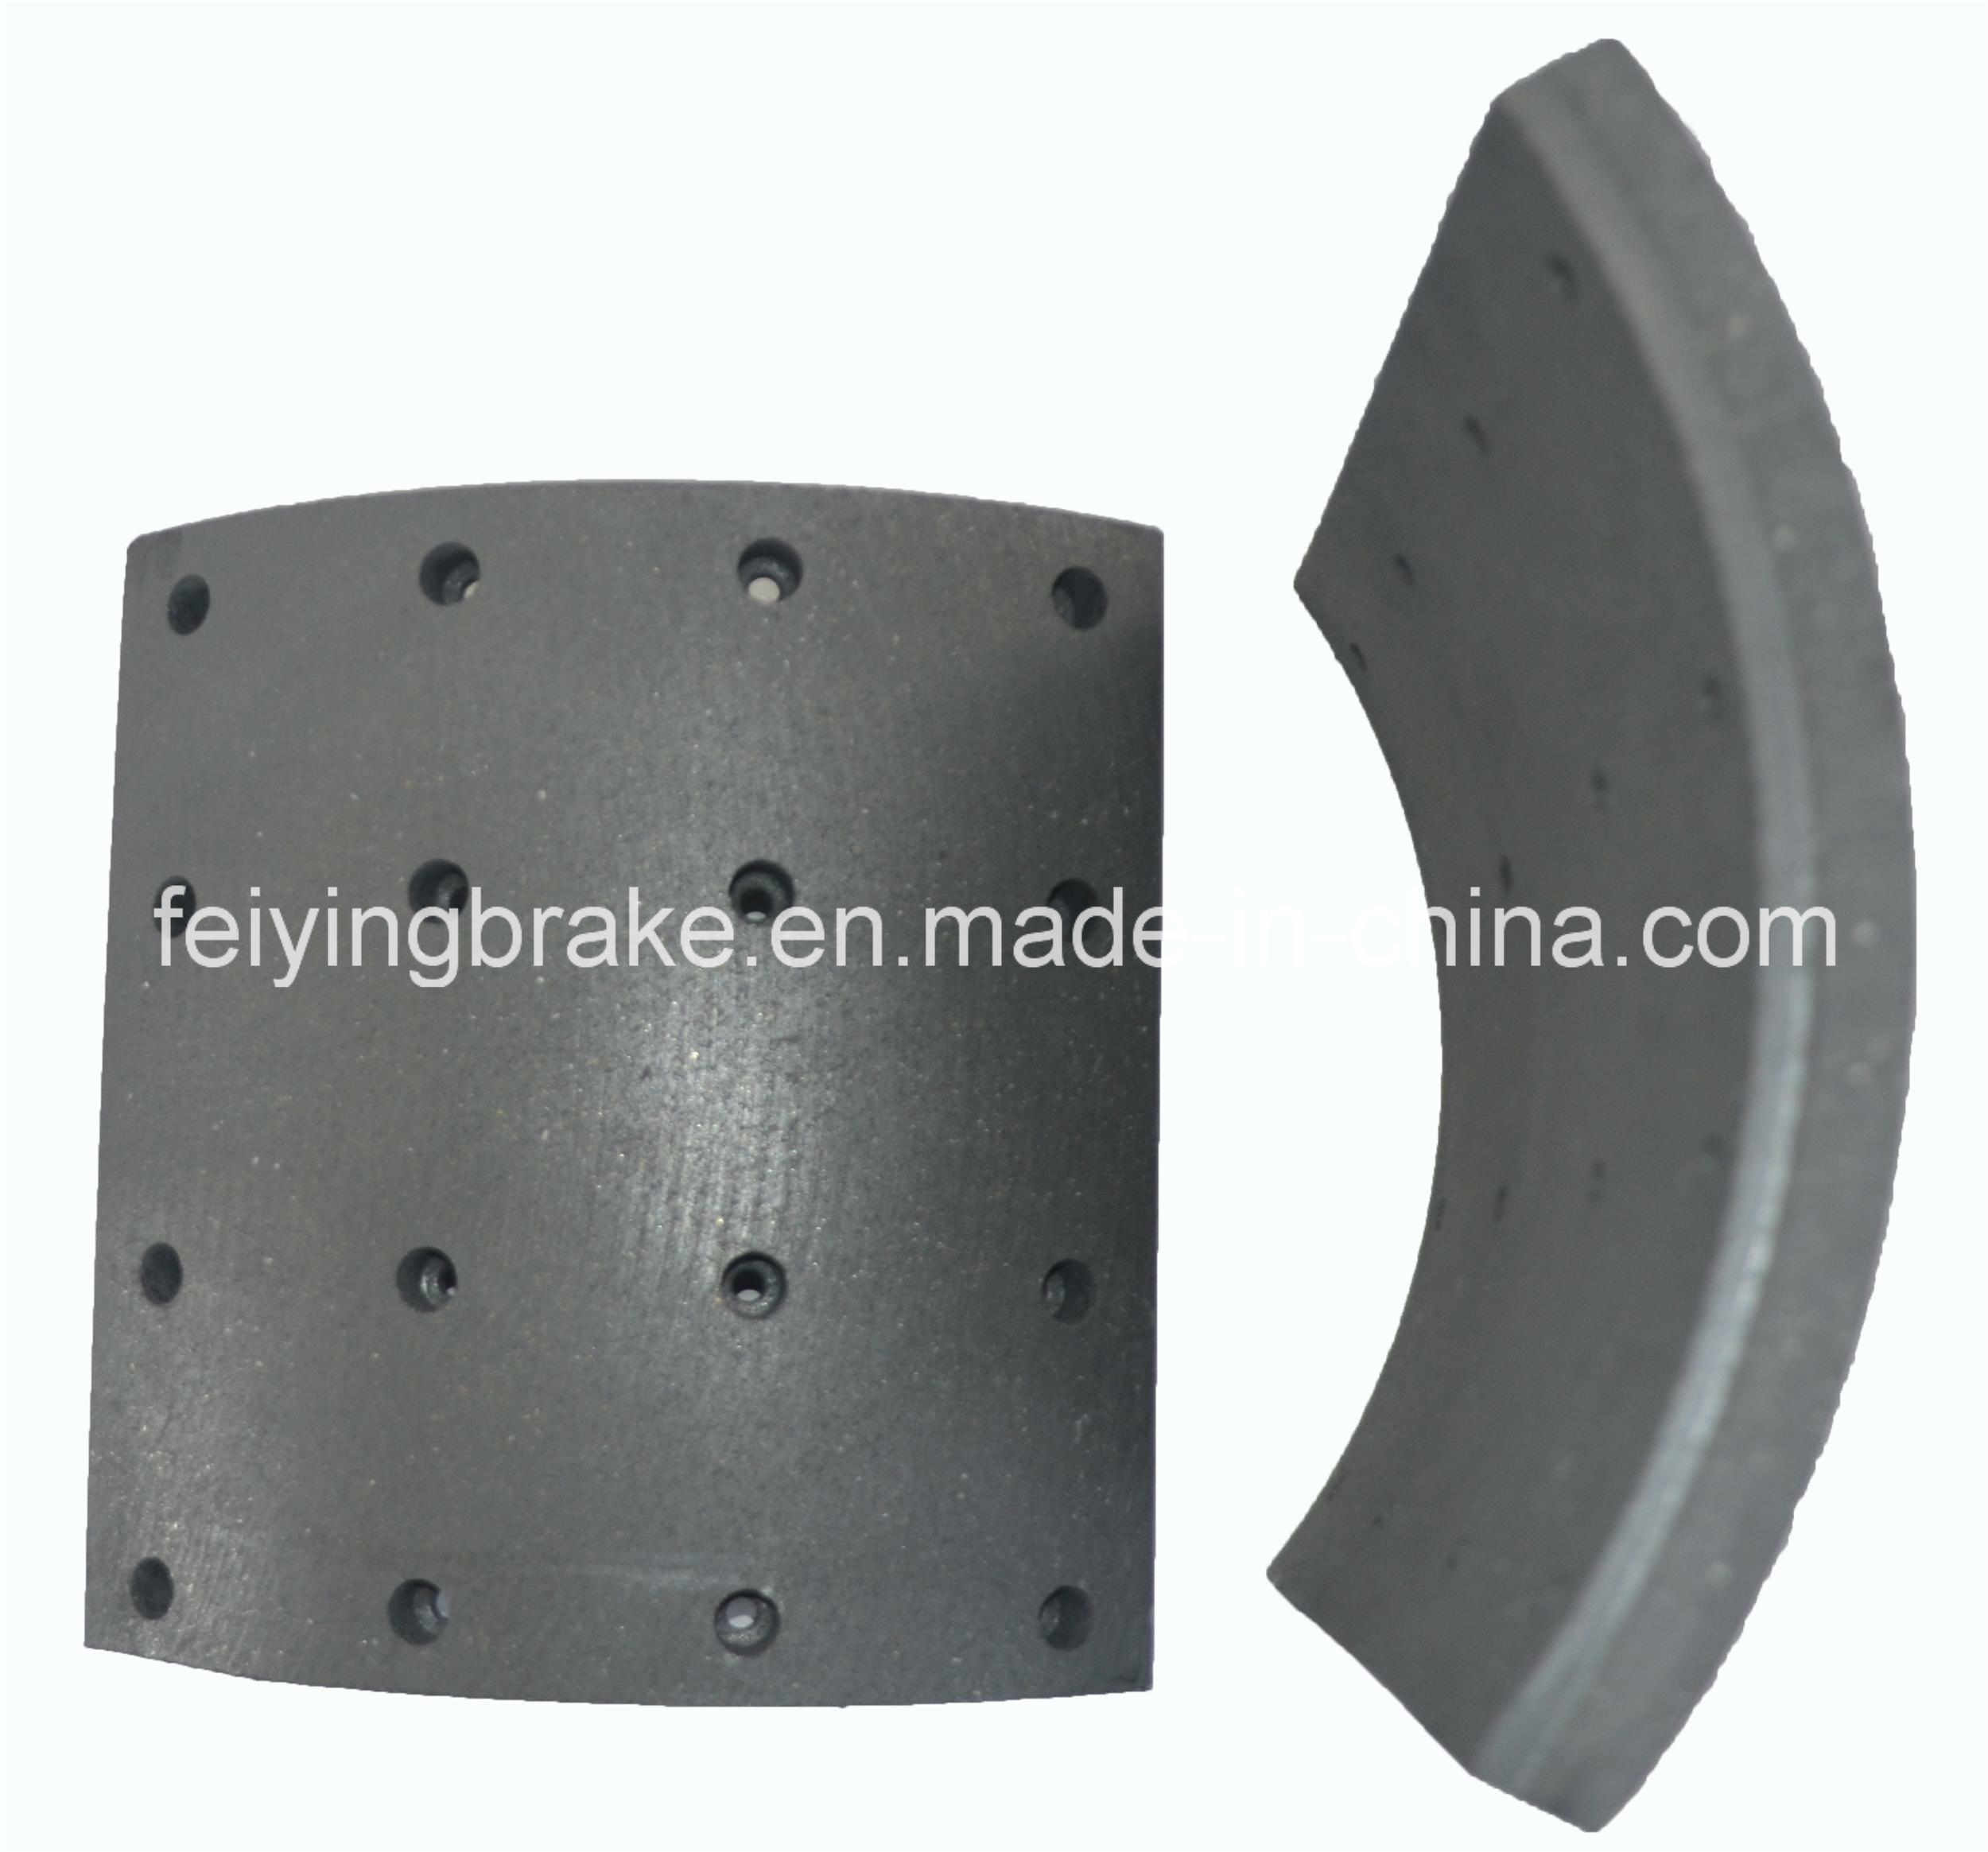 Brake Lining Auto Spare Part for Semi-Metal Asbestos (WVA: 19933 BFMC: SV/42/2) for European Truck